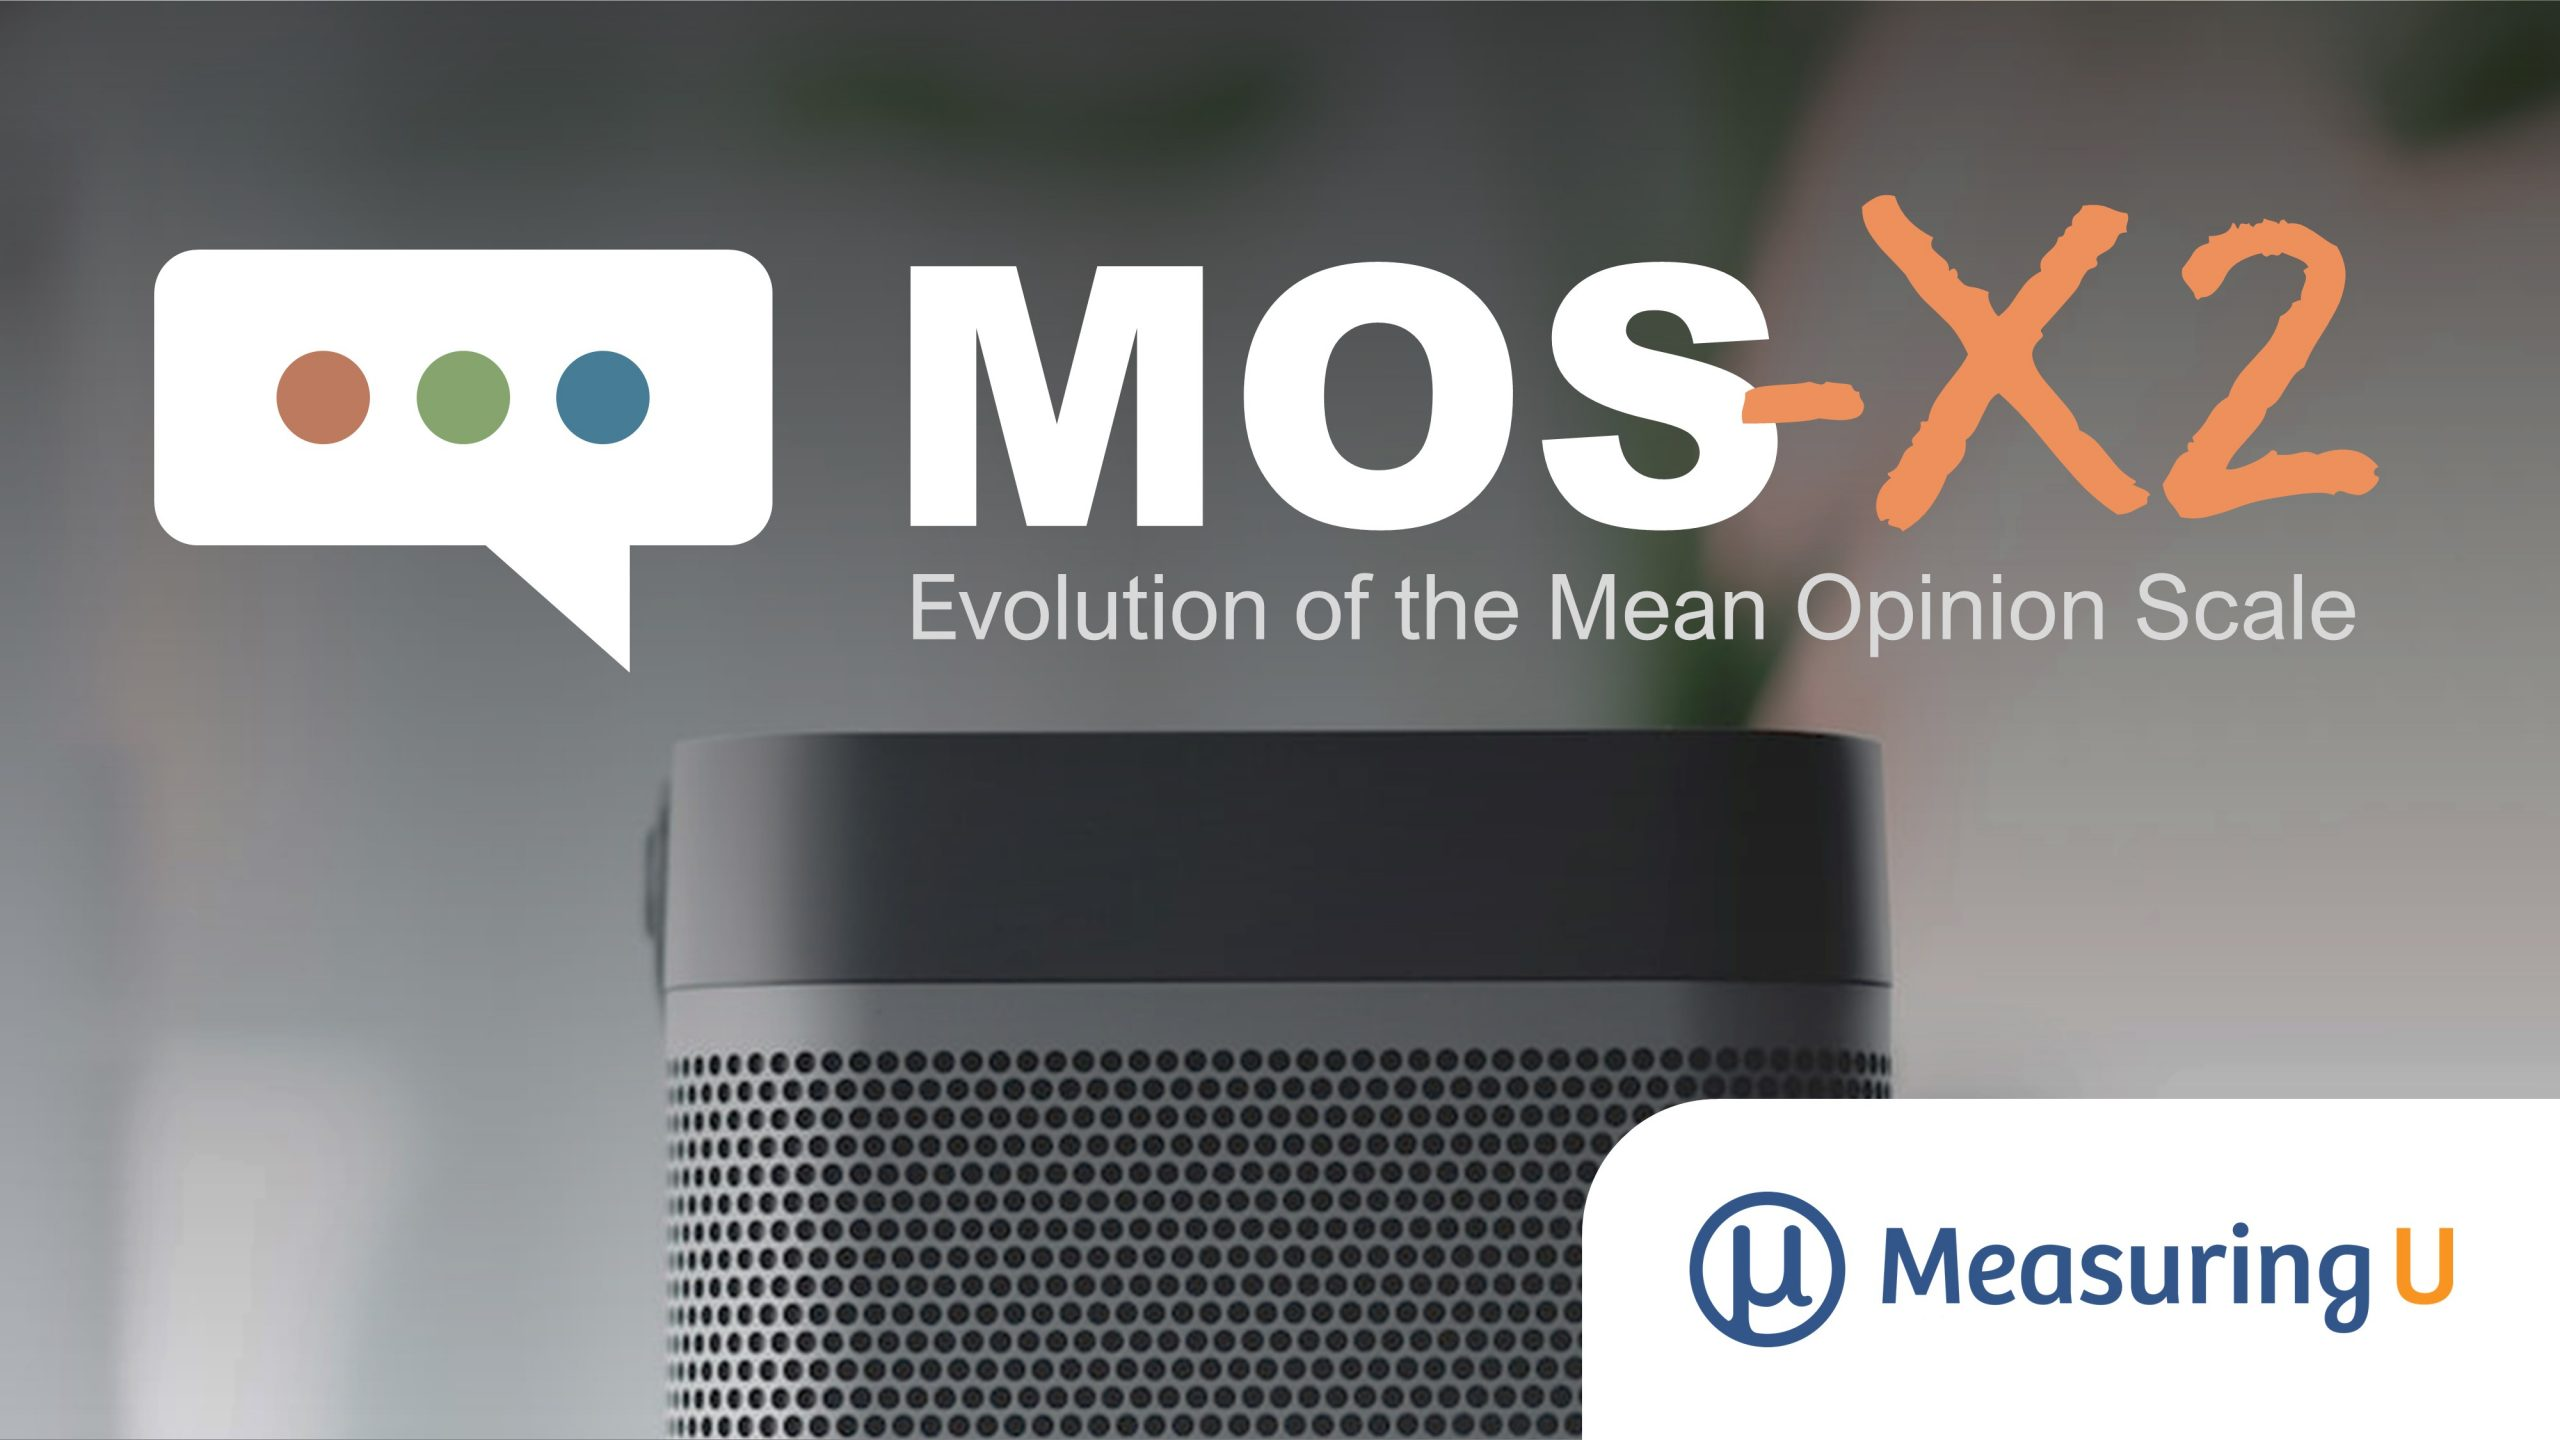 The Evolution of the Mean Opinion Scale: From MOS-R to MOS-X2